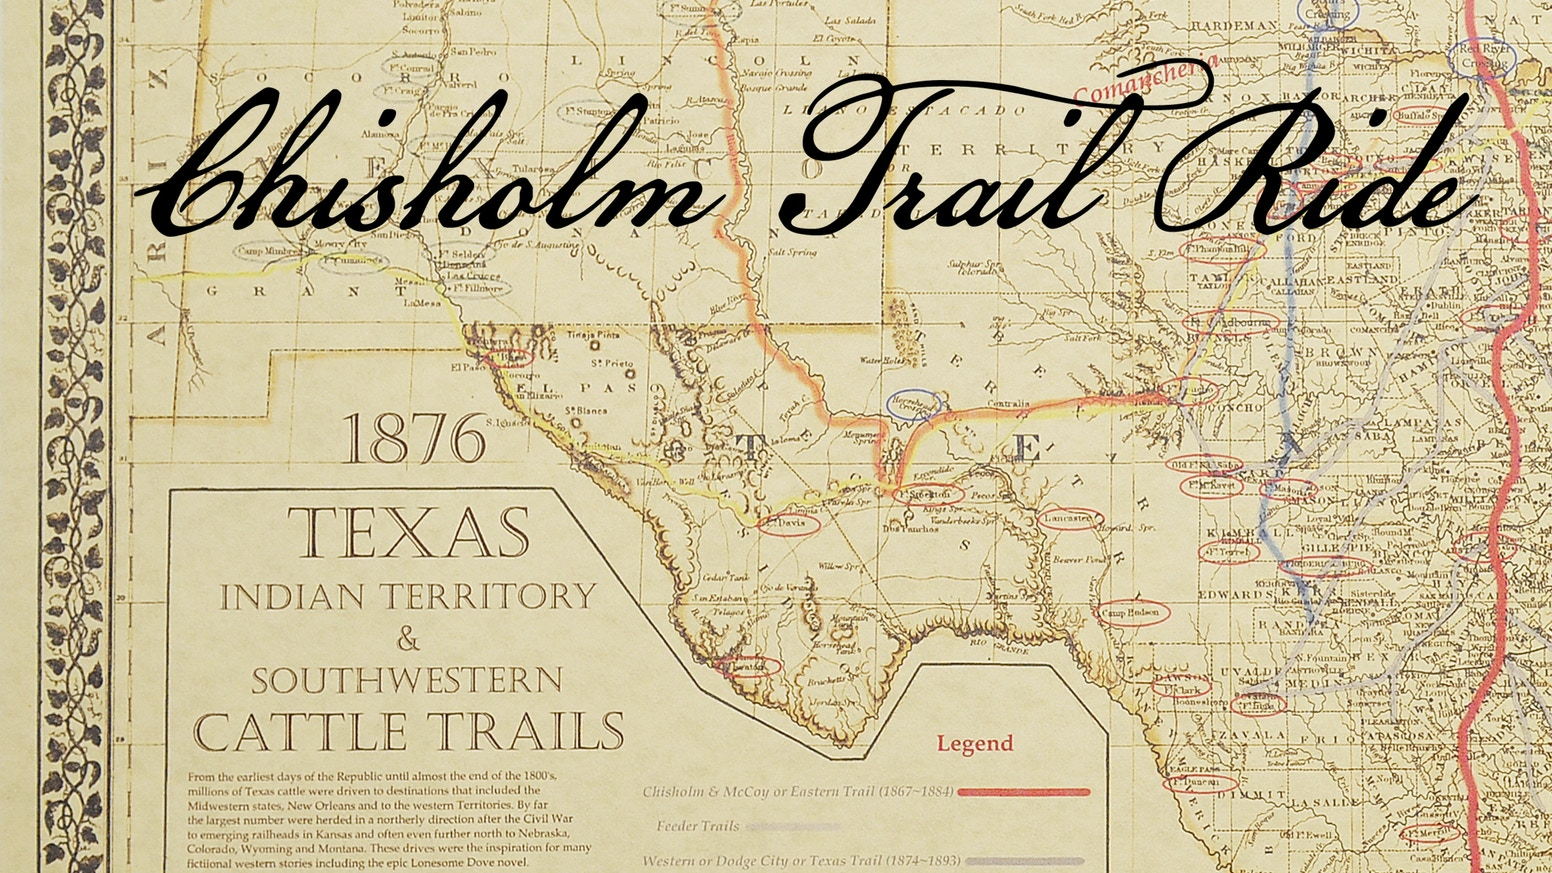 Chisholm Trail Ride by Chad Nicholson & Tyler Sharp ... on mormon trail map, henderson trail map, great western cattle trail, black hills map, kitty hawk map, big falls trail map, frontier trail map, salton sea map, santa fe trail, durham trail map, shawnee trail map, red river, chisum trail map, duluth trail map, goodnight-loving cattle trail map, cherry trail map, abilene cattle trail map, colorado map, great plains map, western trail map, bozeman trail, texas road, chism trail map, sedalia trail map, farmington trail map,